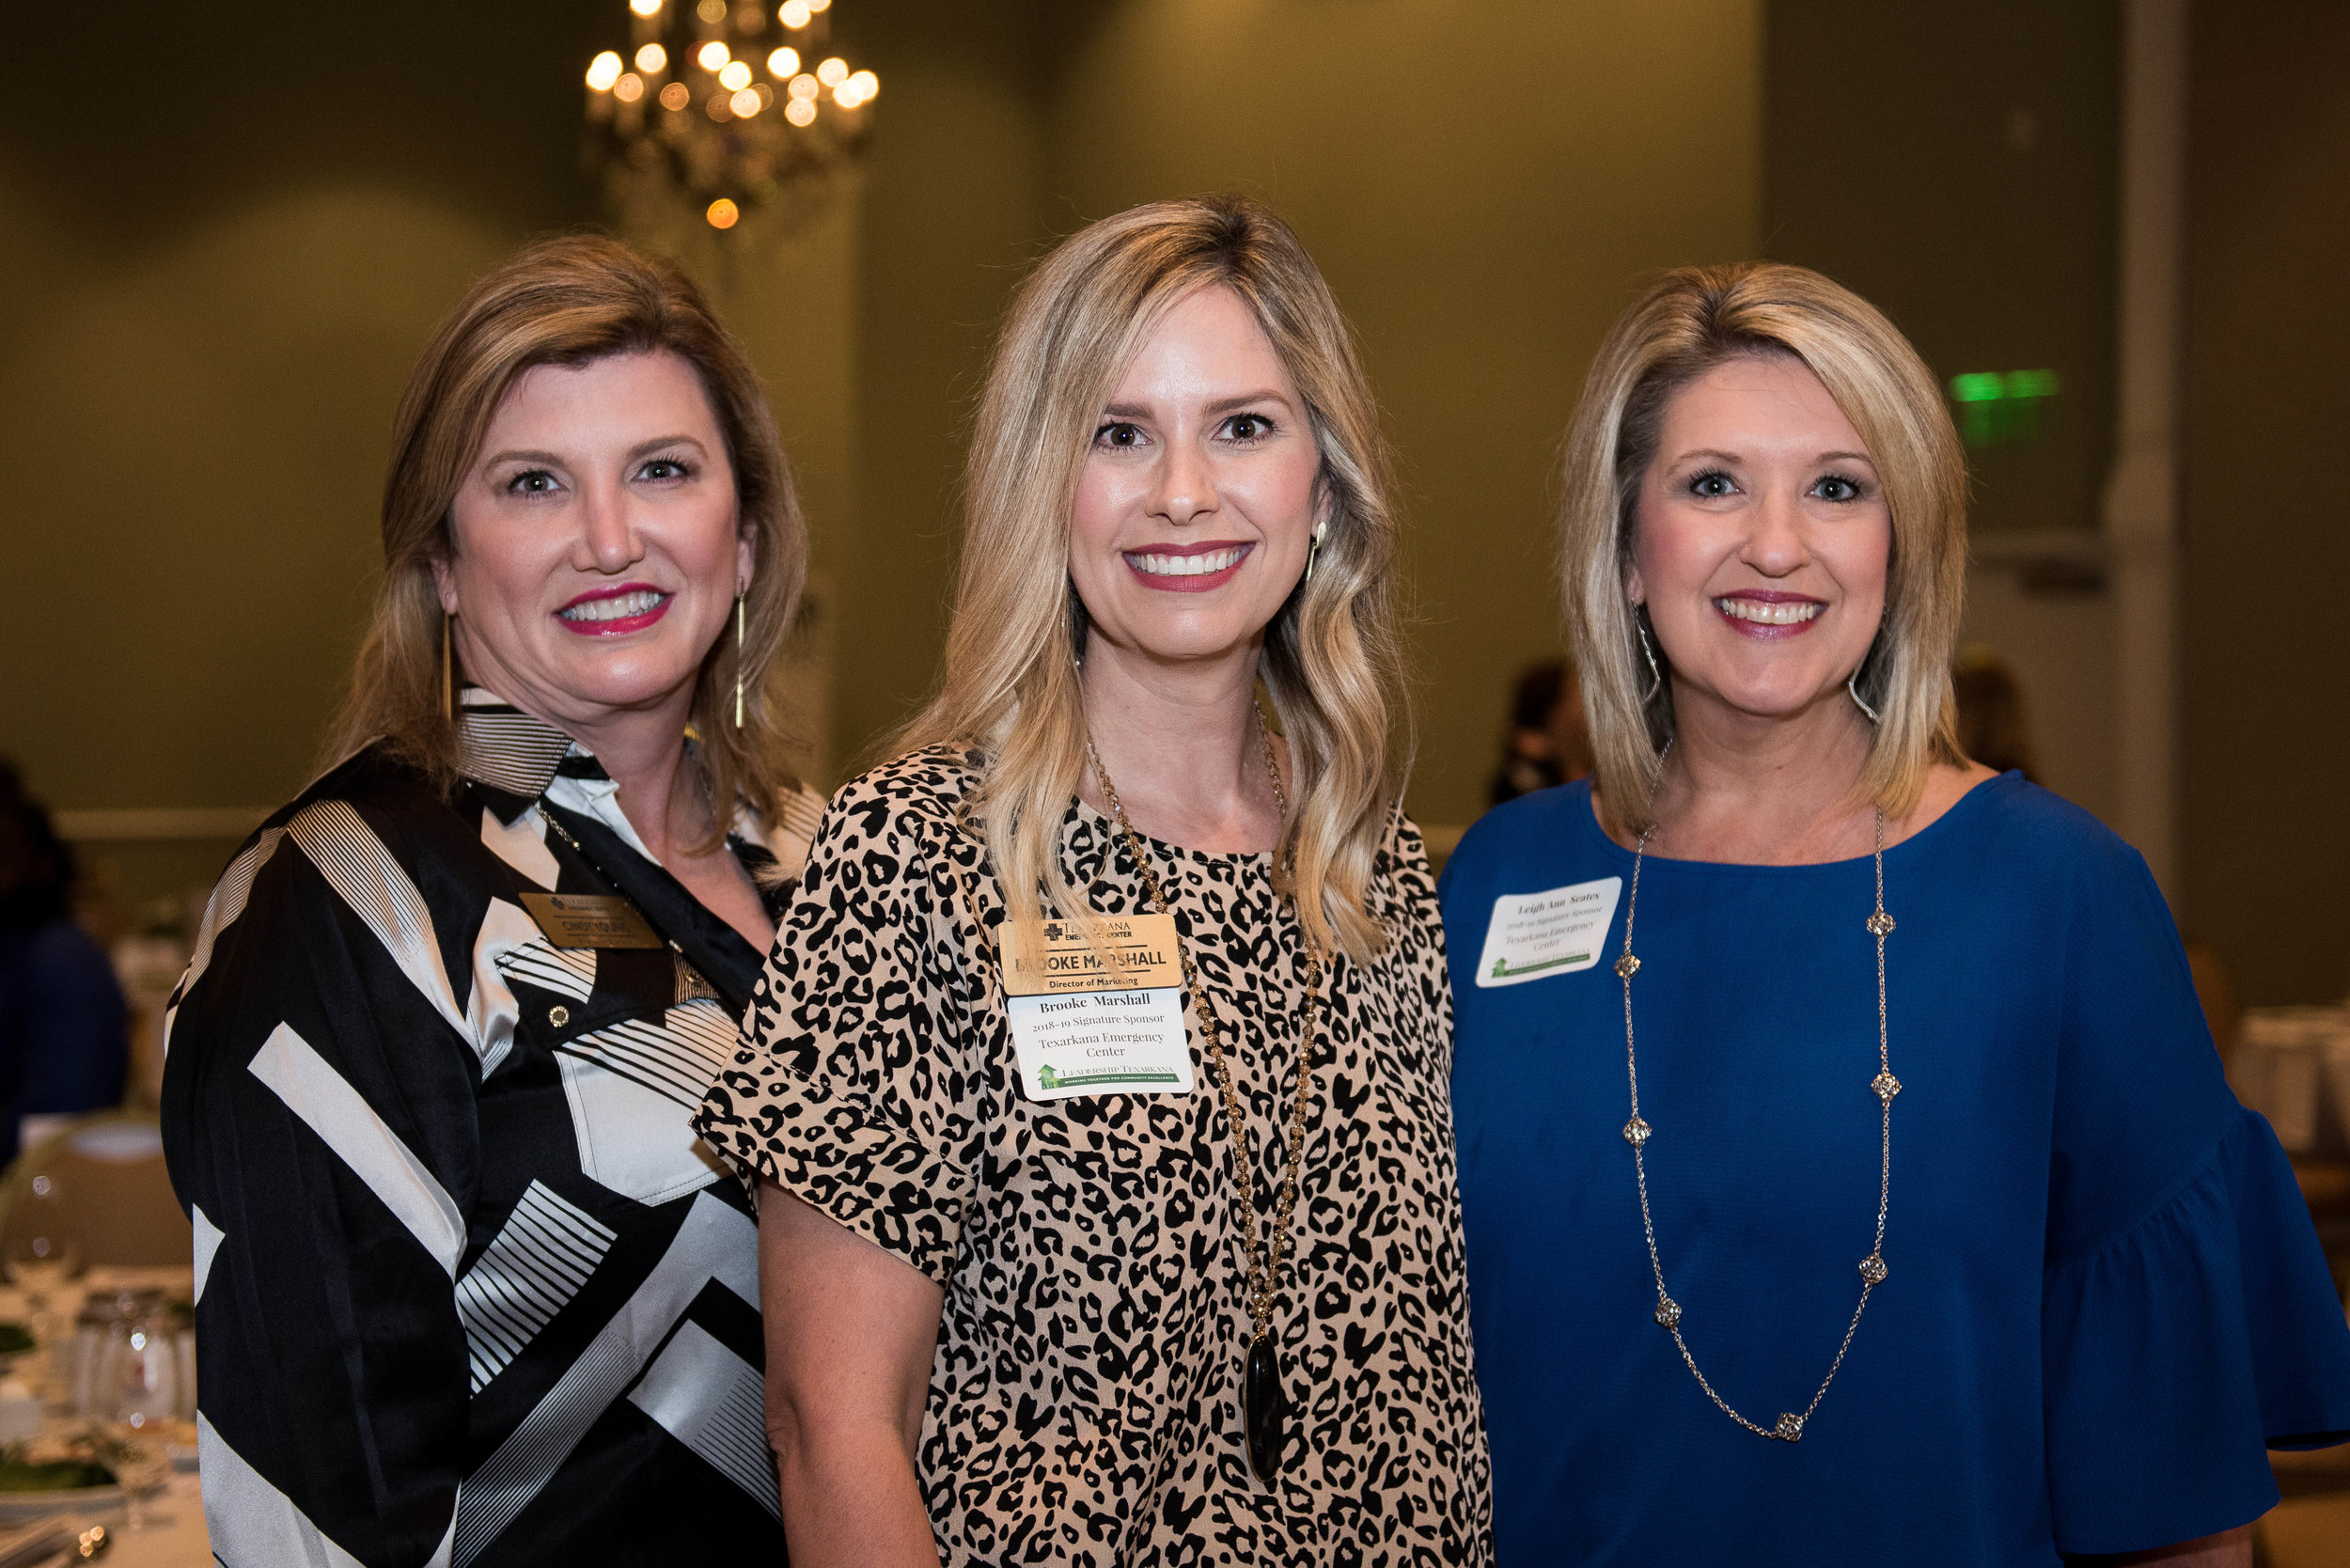 Cindy Young, Brooke Marshall and Leigh Ann Scates